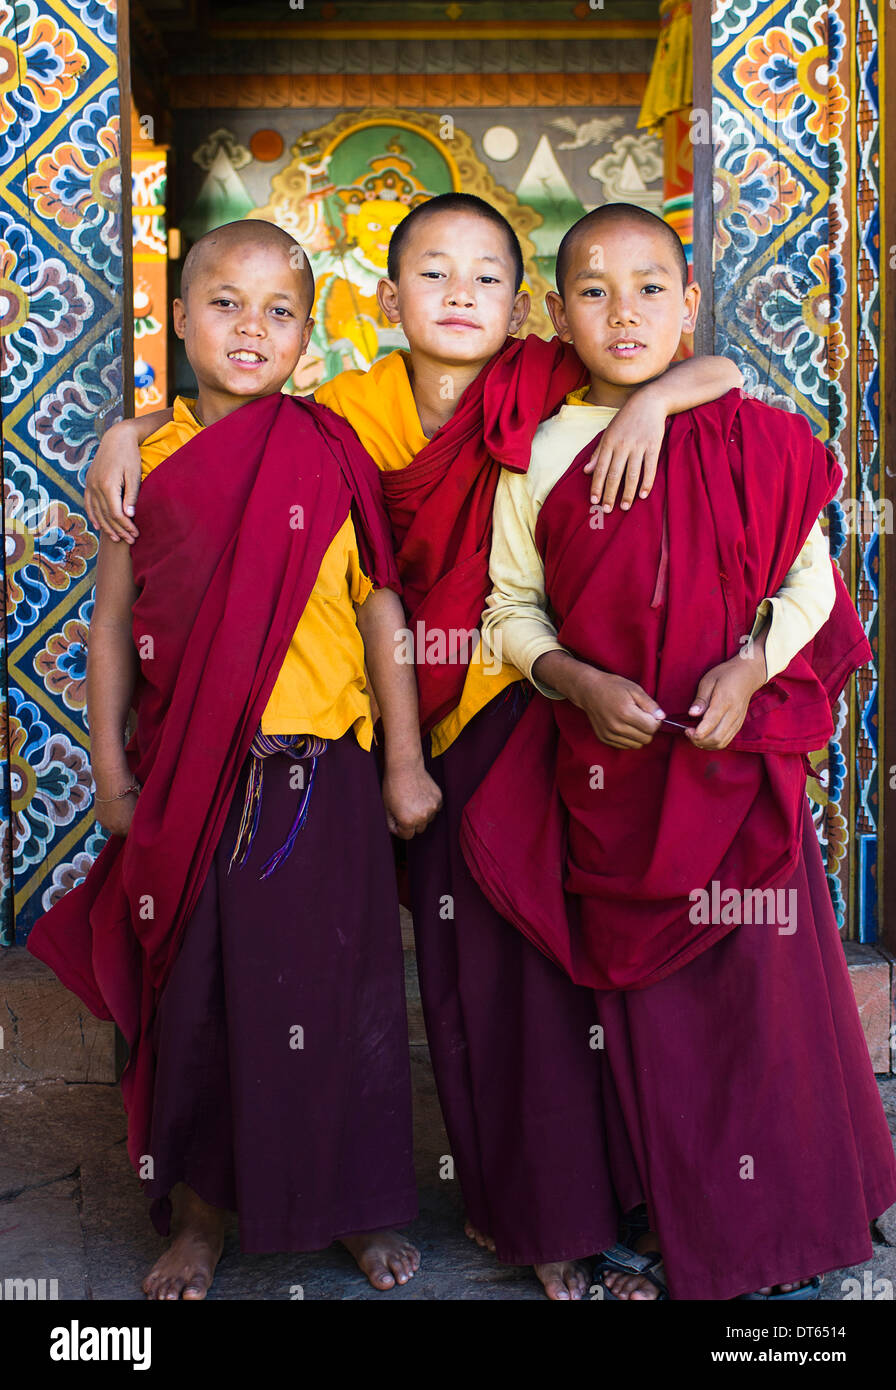 Bhutan, South Asia, Punakha, Three young novice boy monks standing in doorway of Chimi Lakhang temple in the old capital. - Stock Image